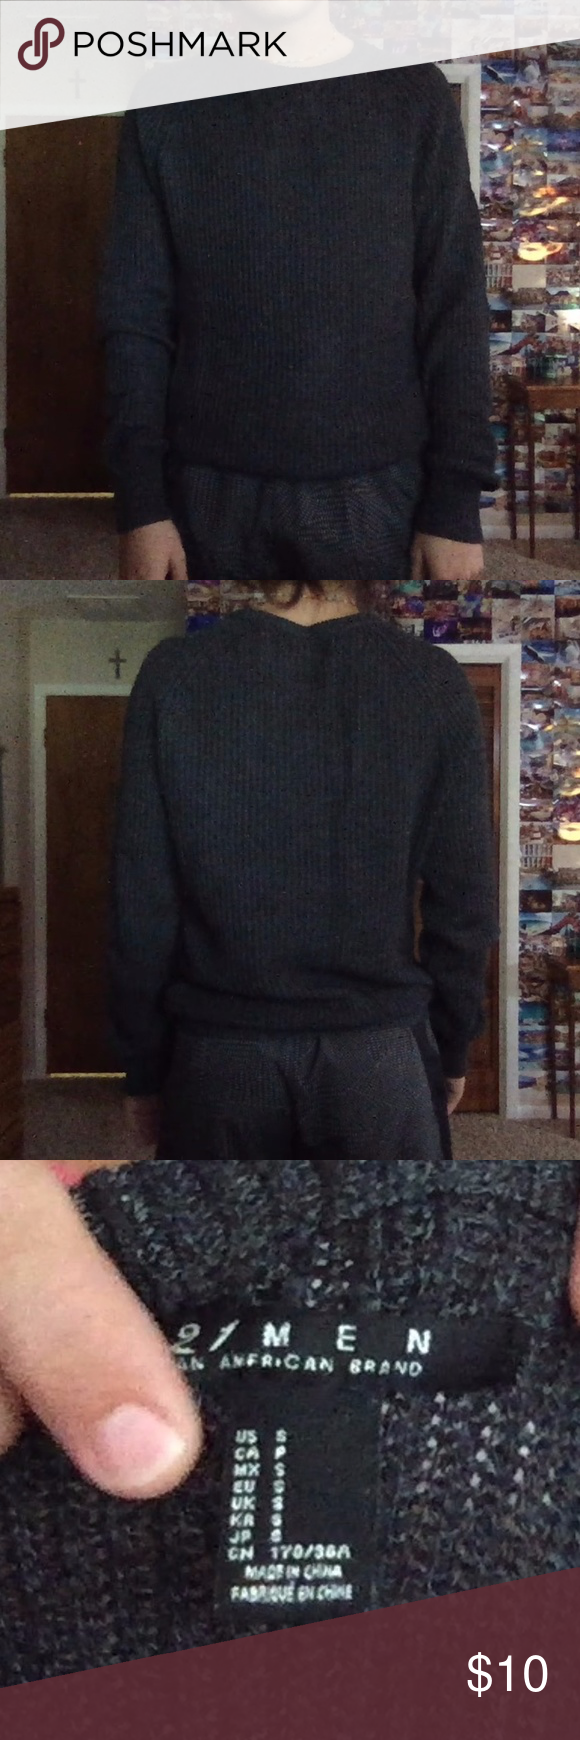 men's grey fisherman sweater super comfy and oversized fit